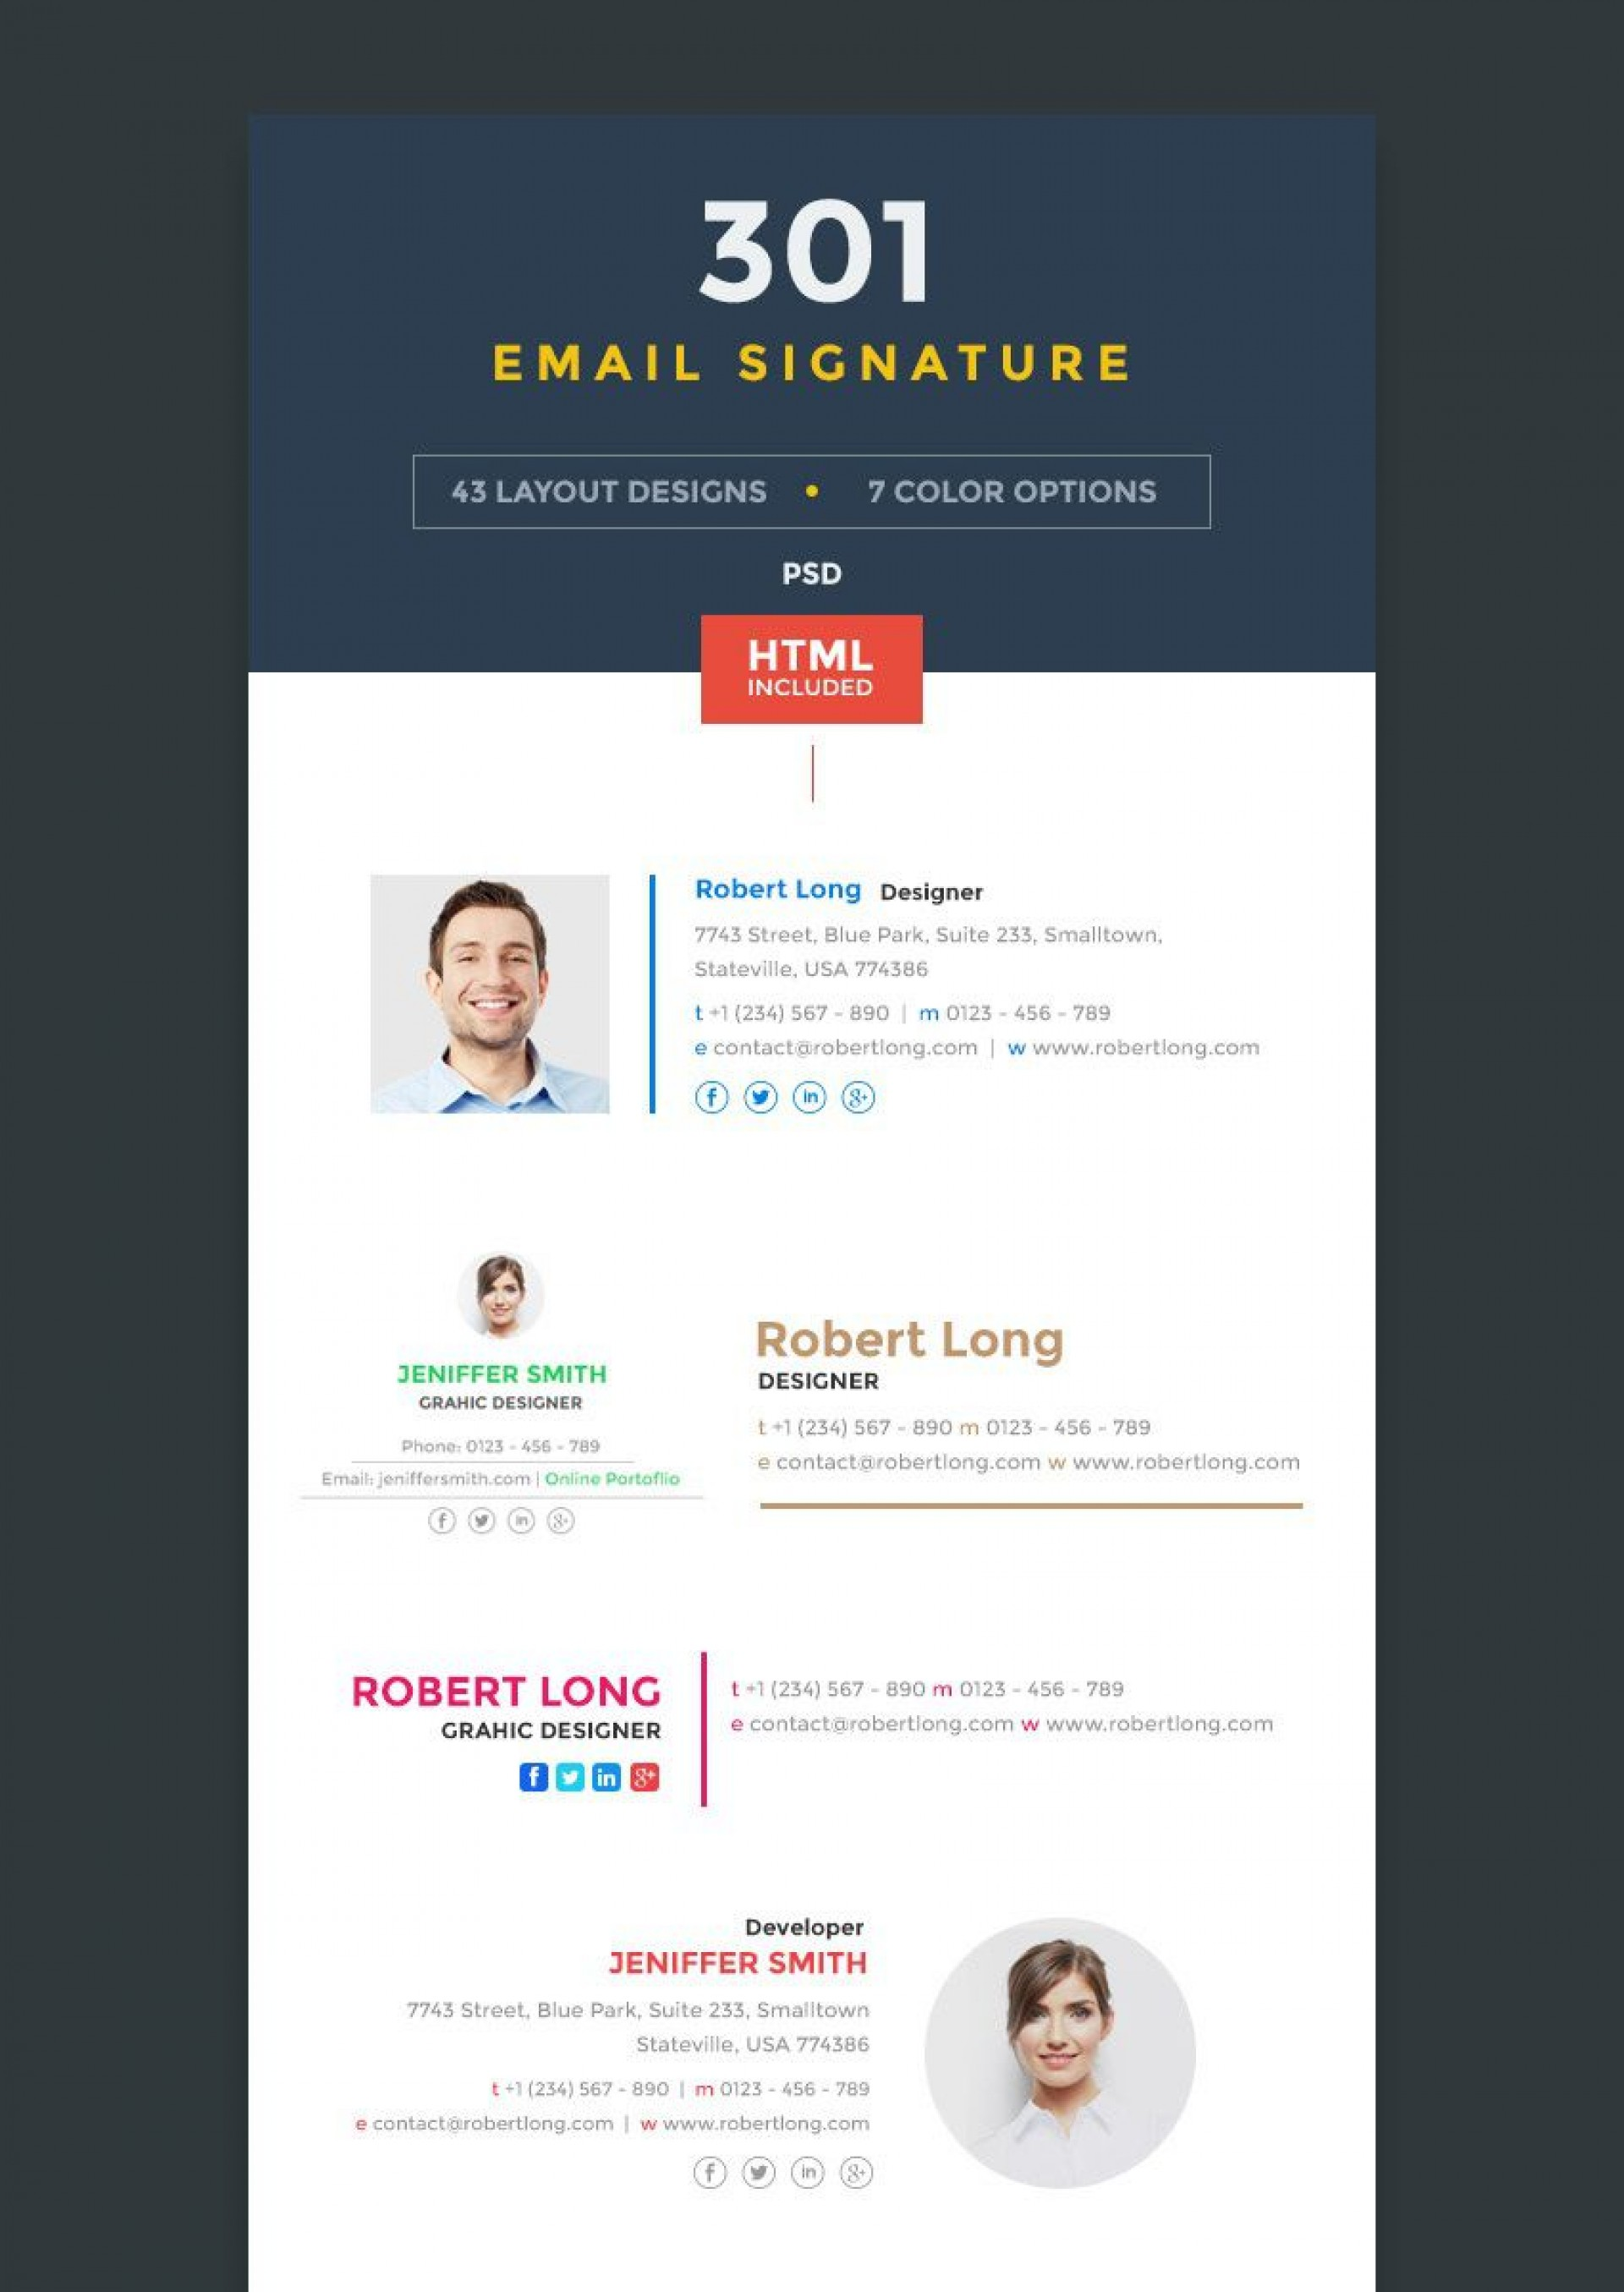 002 Magnificent Outlook Email Signature Template Example  Examples1920